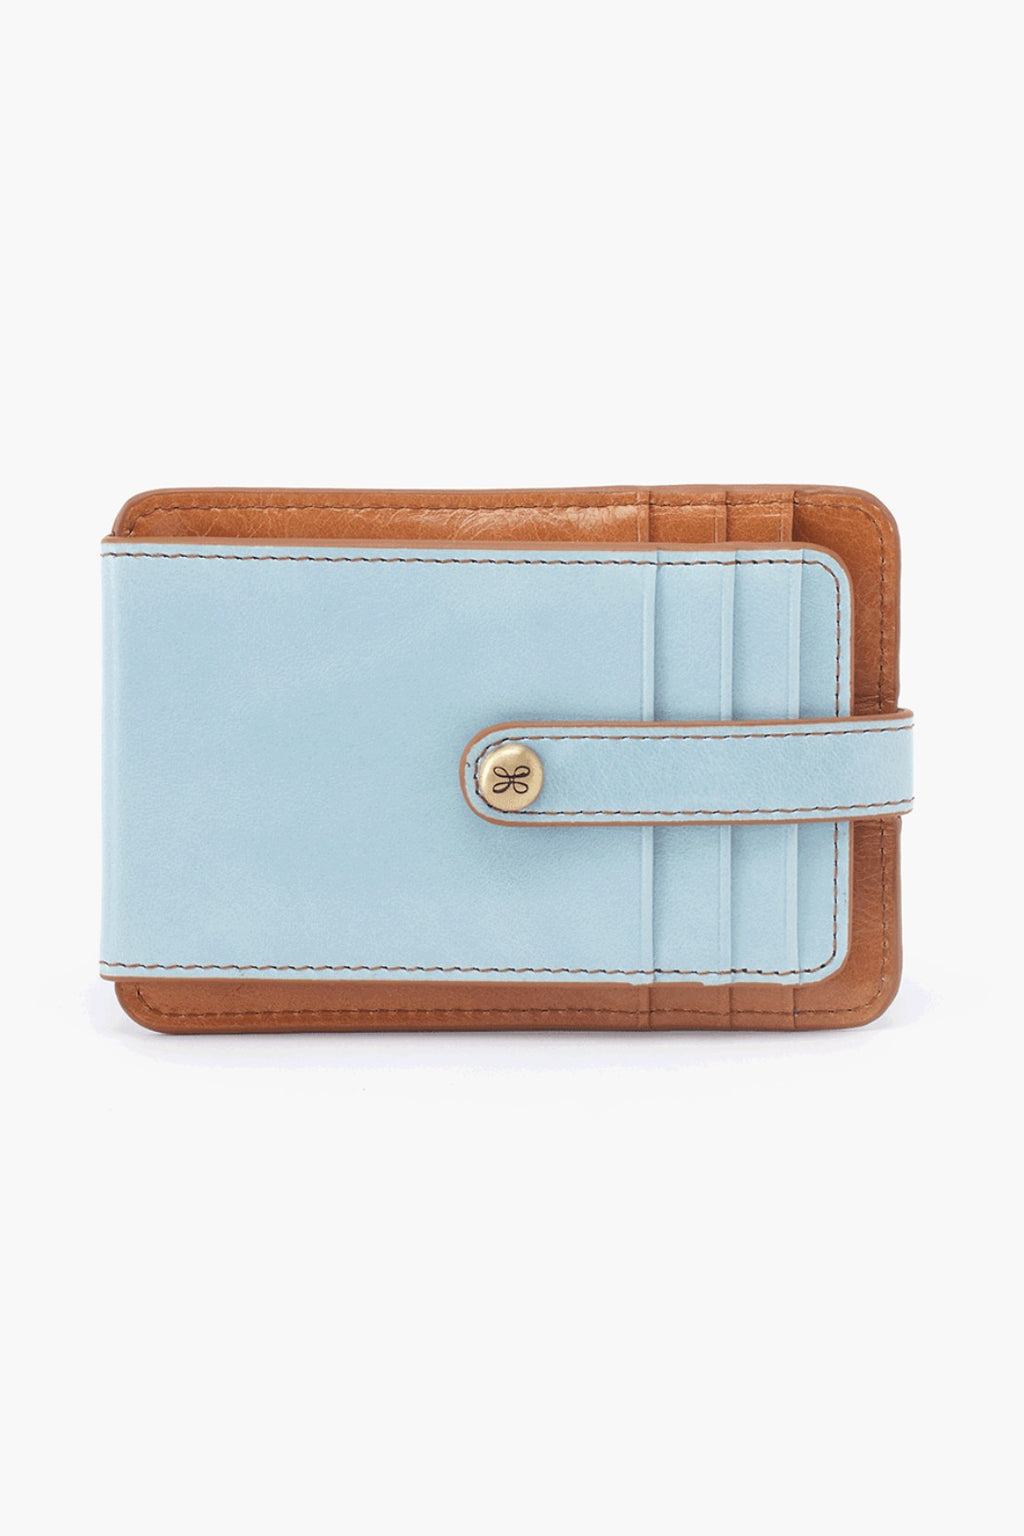 Hobo Access Wallet in Whisper Blue